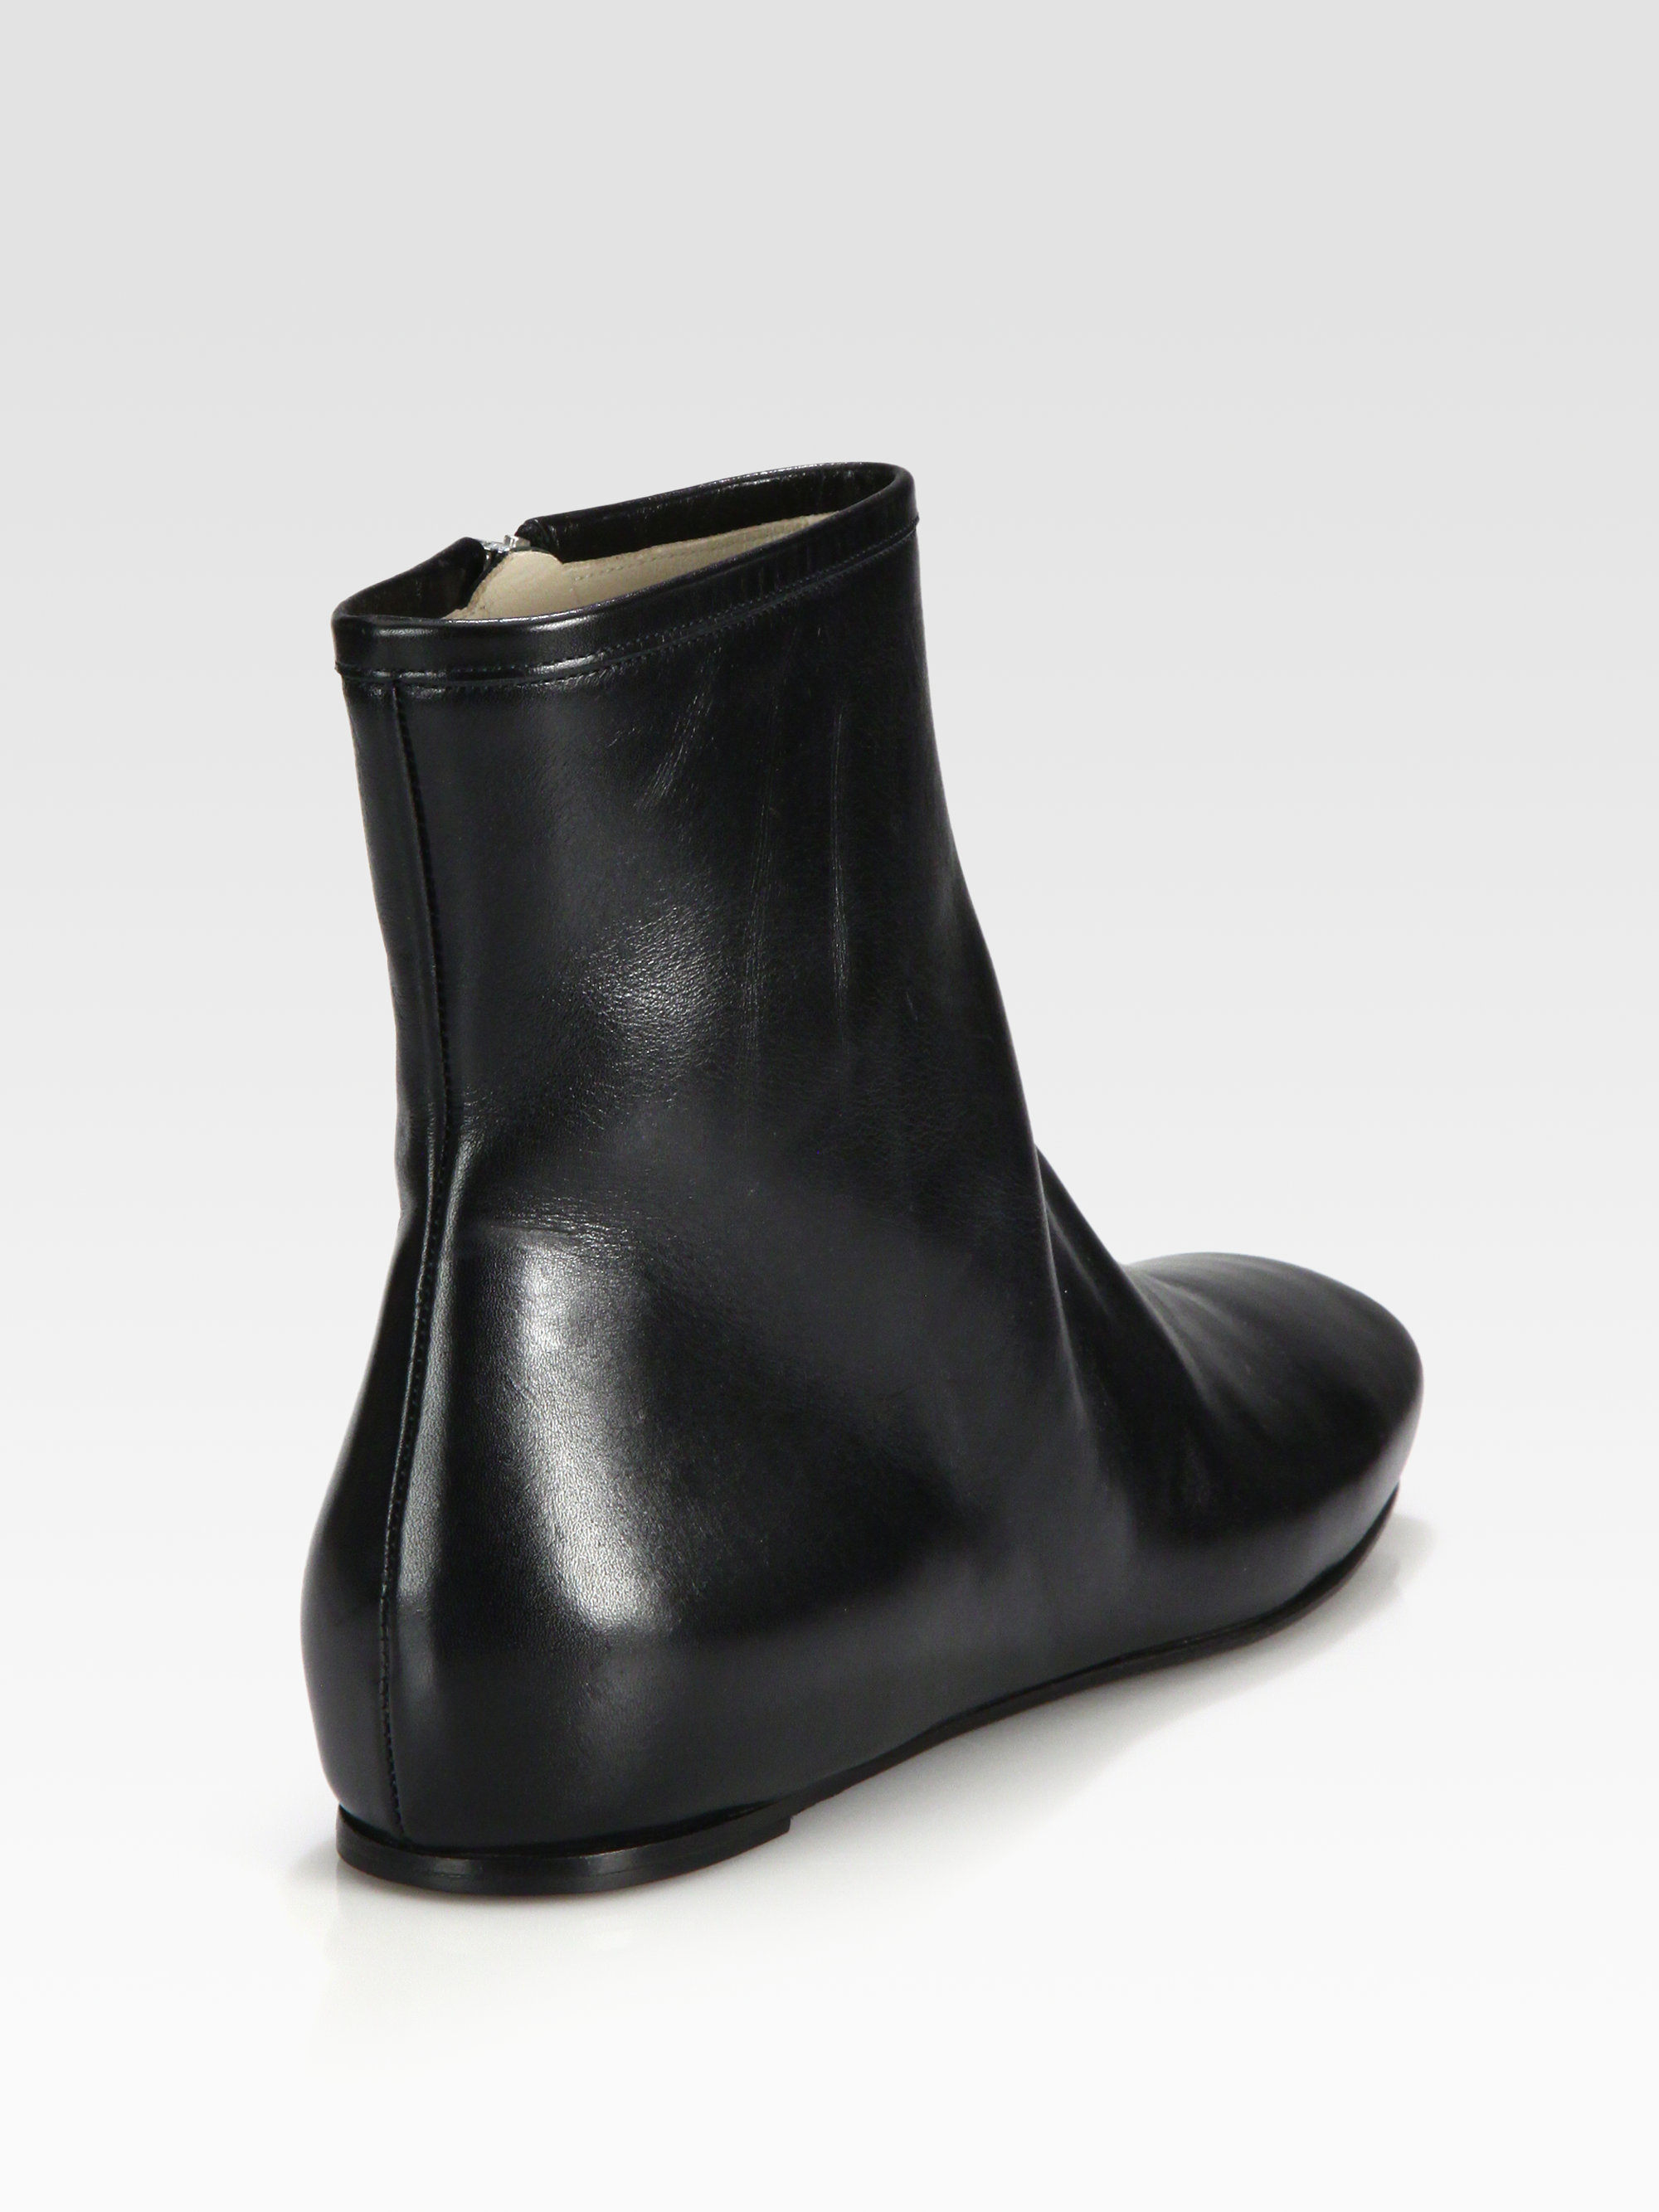 jil sander navy flat leather ankle boots in black lyst